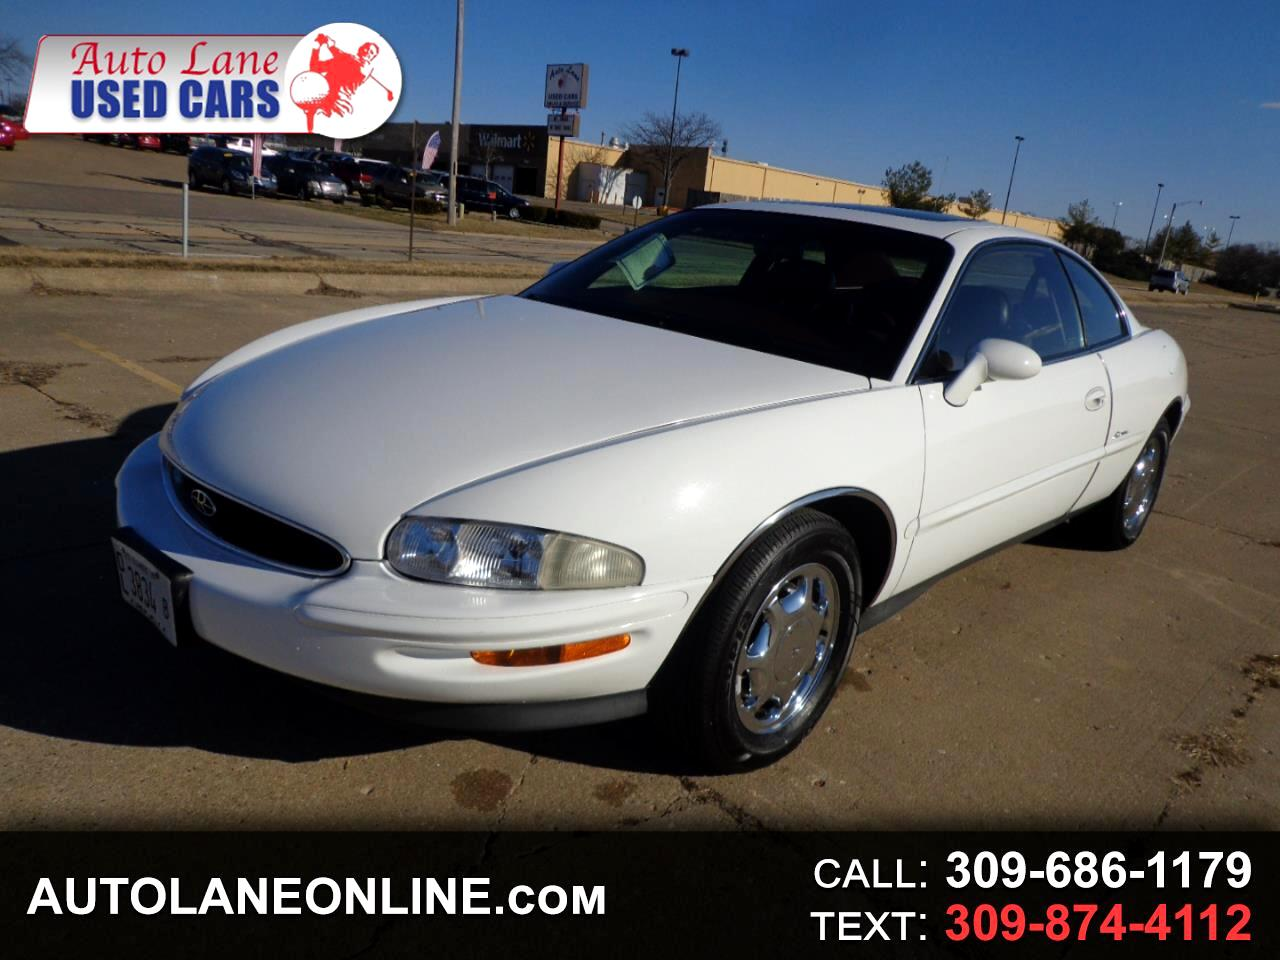 1997 Buick Riviera 2dr Cpe